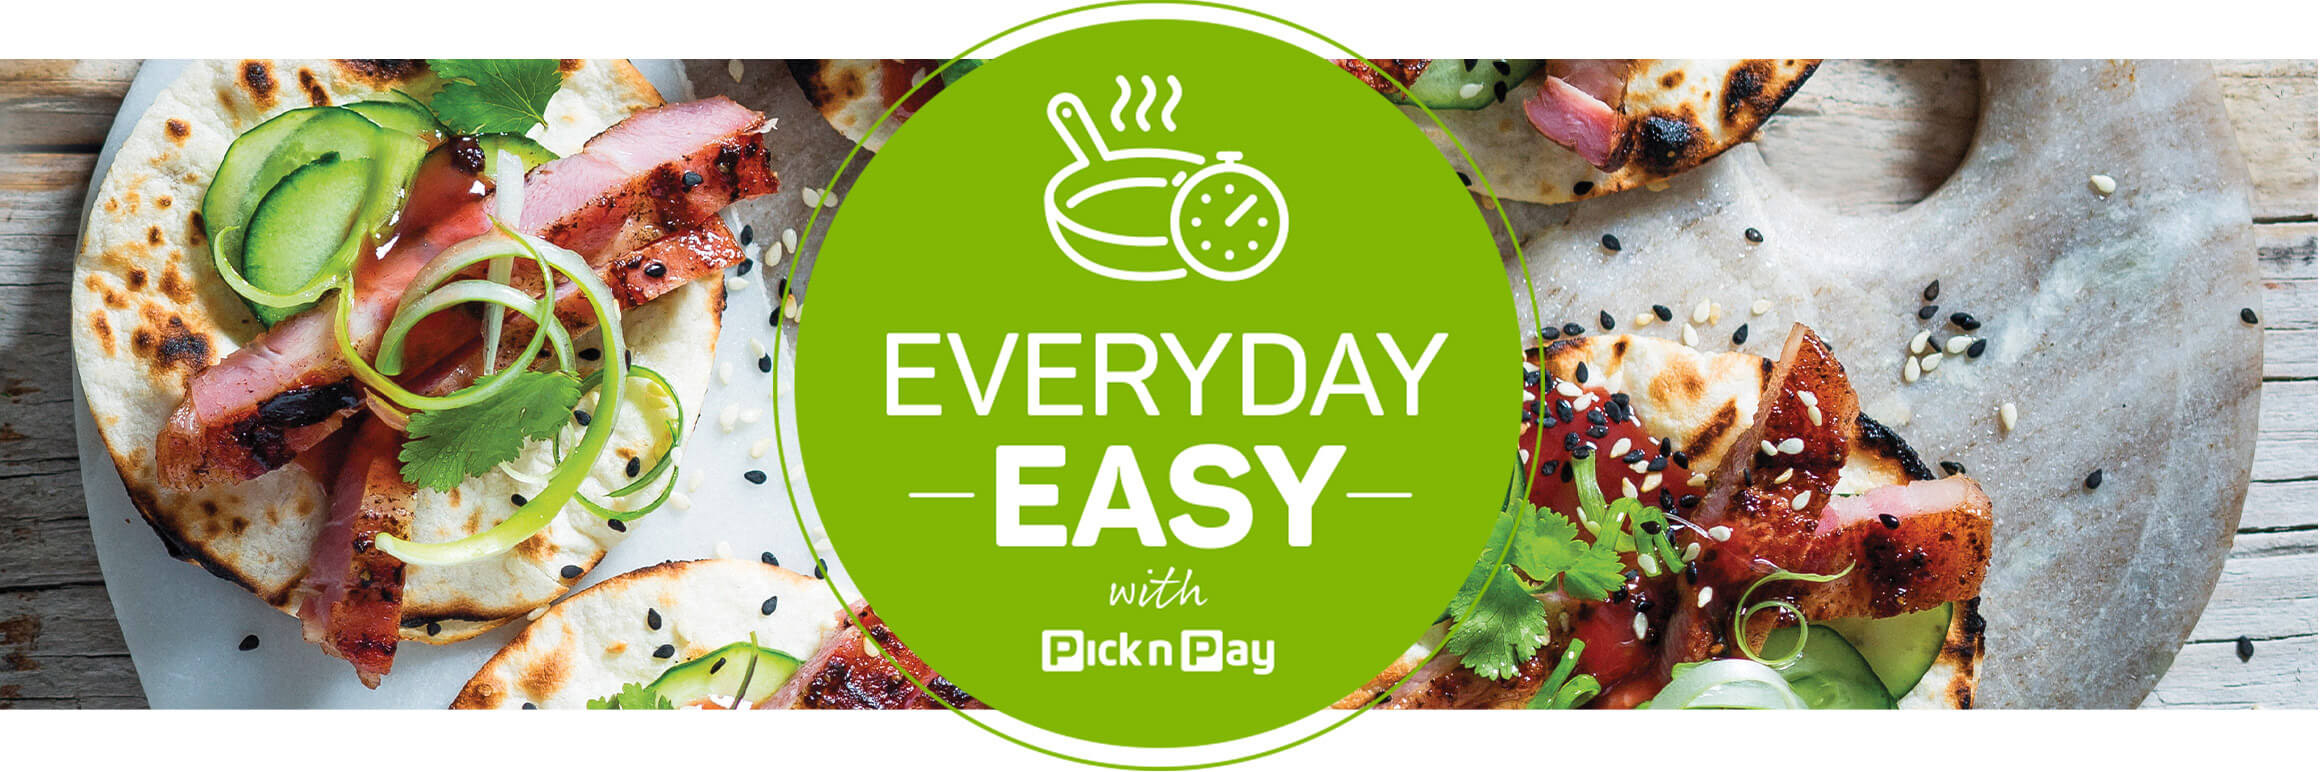 Everyday easy with Pick n Pay